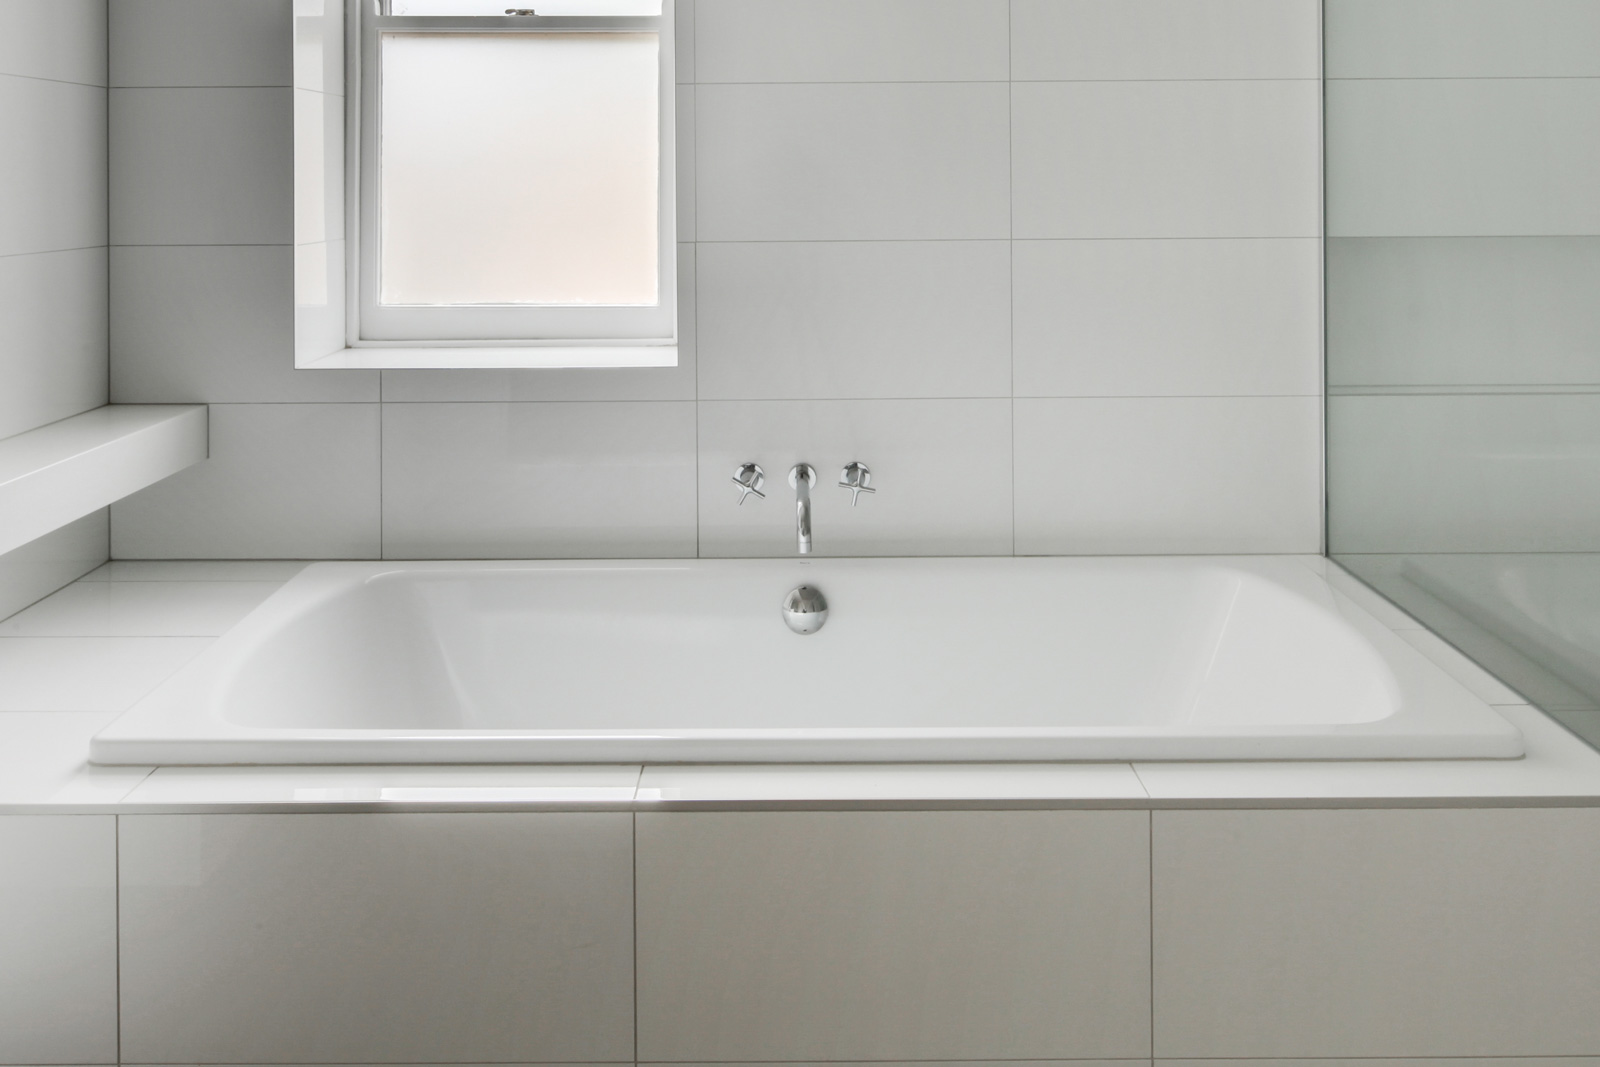 Bathroom modern this method to clean bathroom tiles is 100 times more - A Stark White Tile Bathroom With A Tub And Window